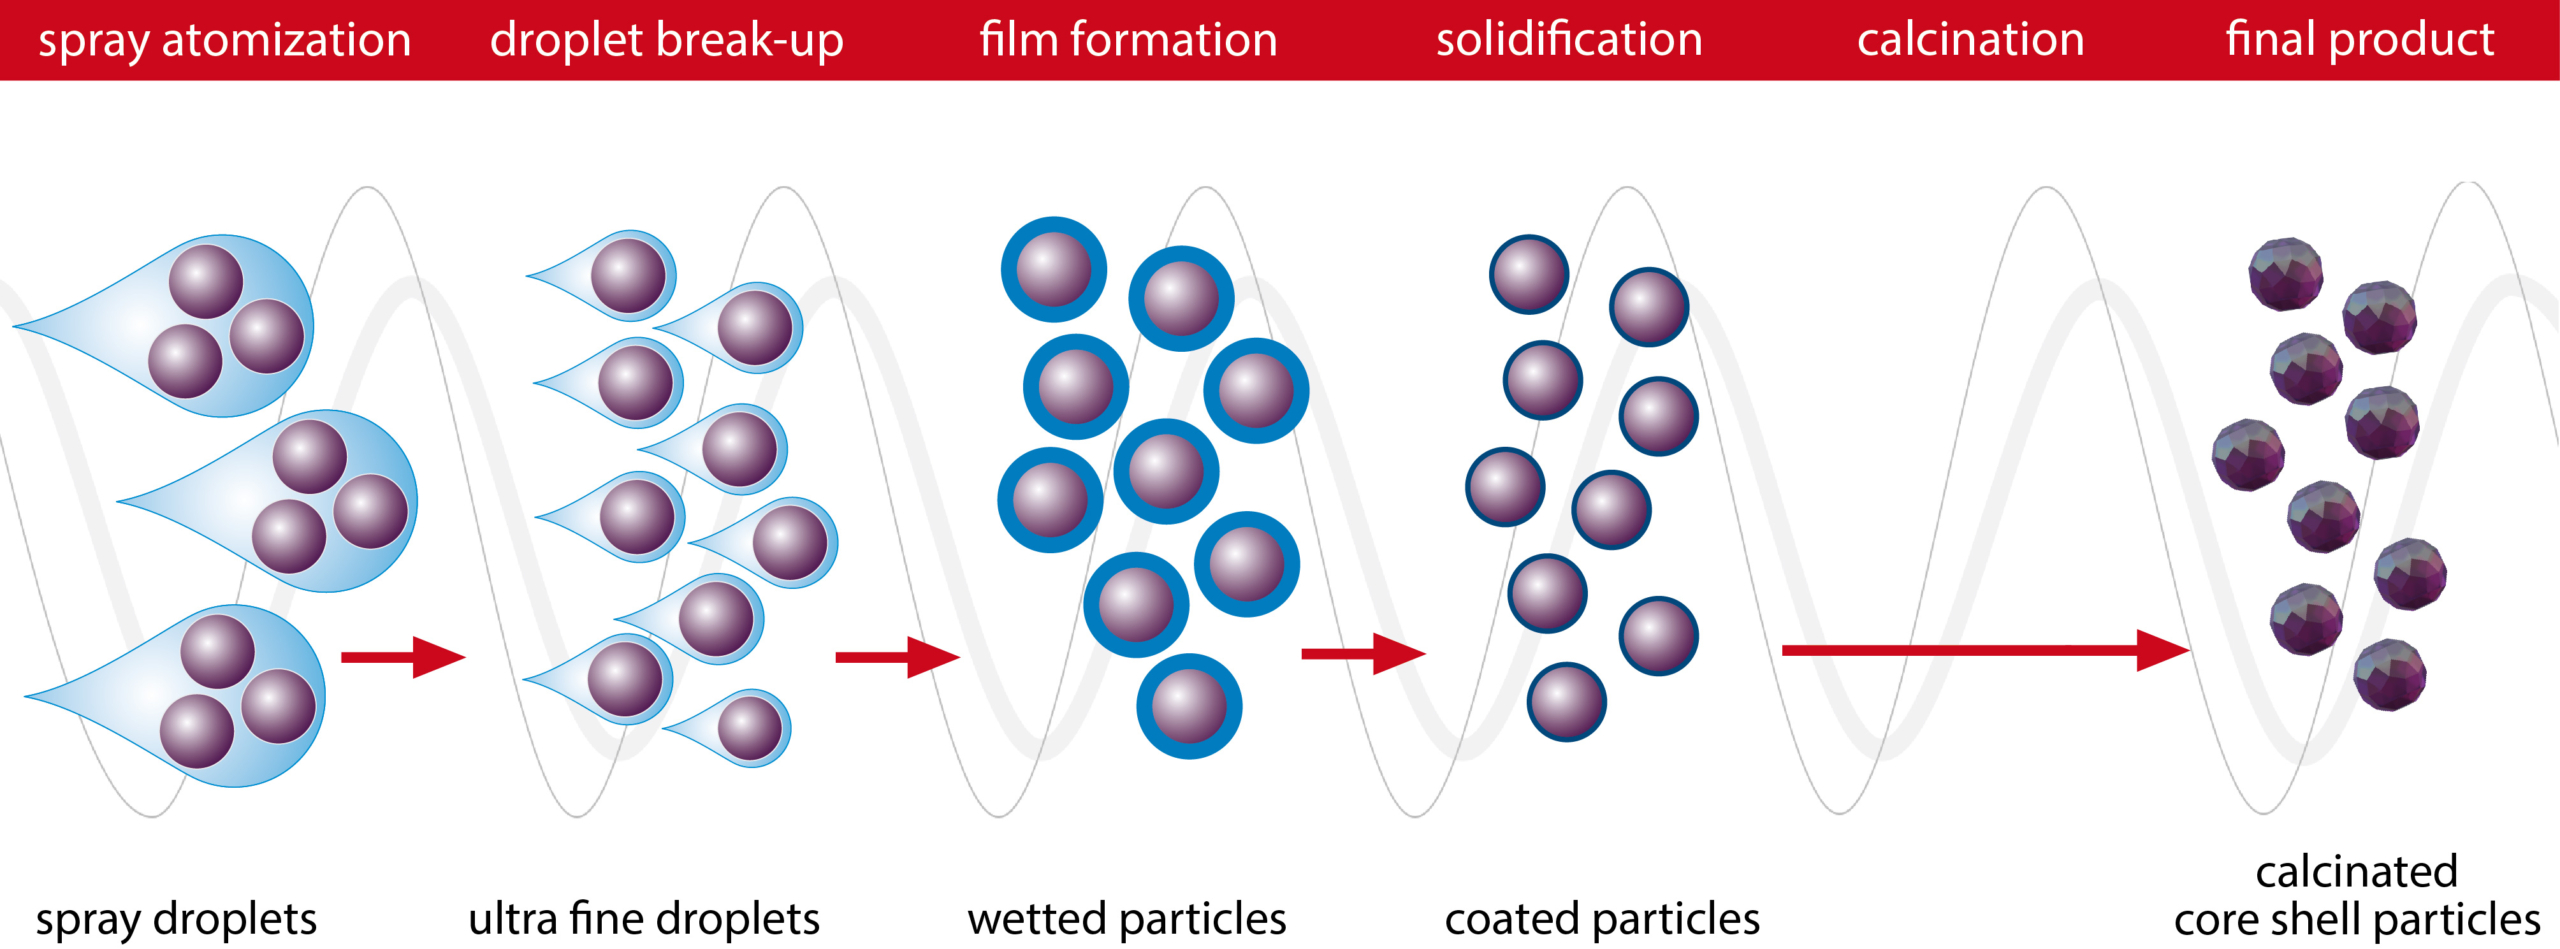 Spray calcination + core-shell coating process using Glatt Powder Synthesis to generate and design micro- and nanoparticles with specific properties